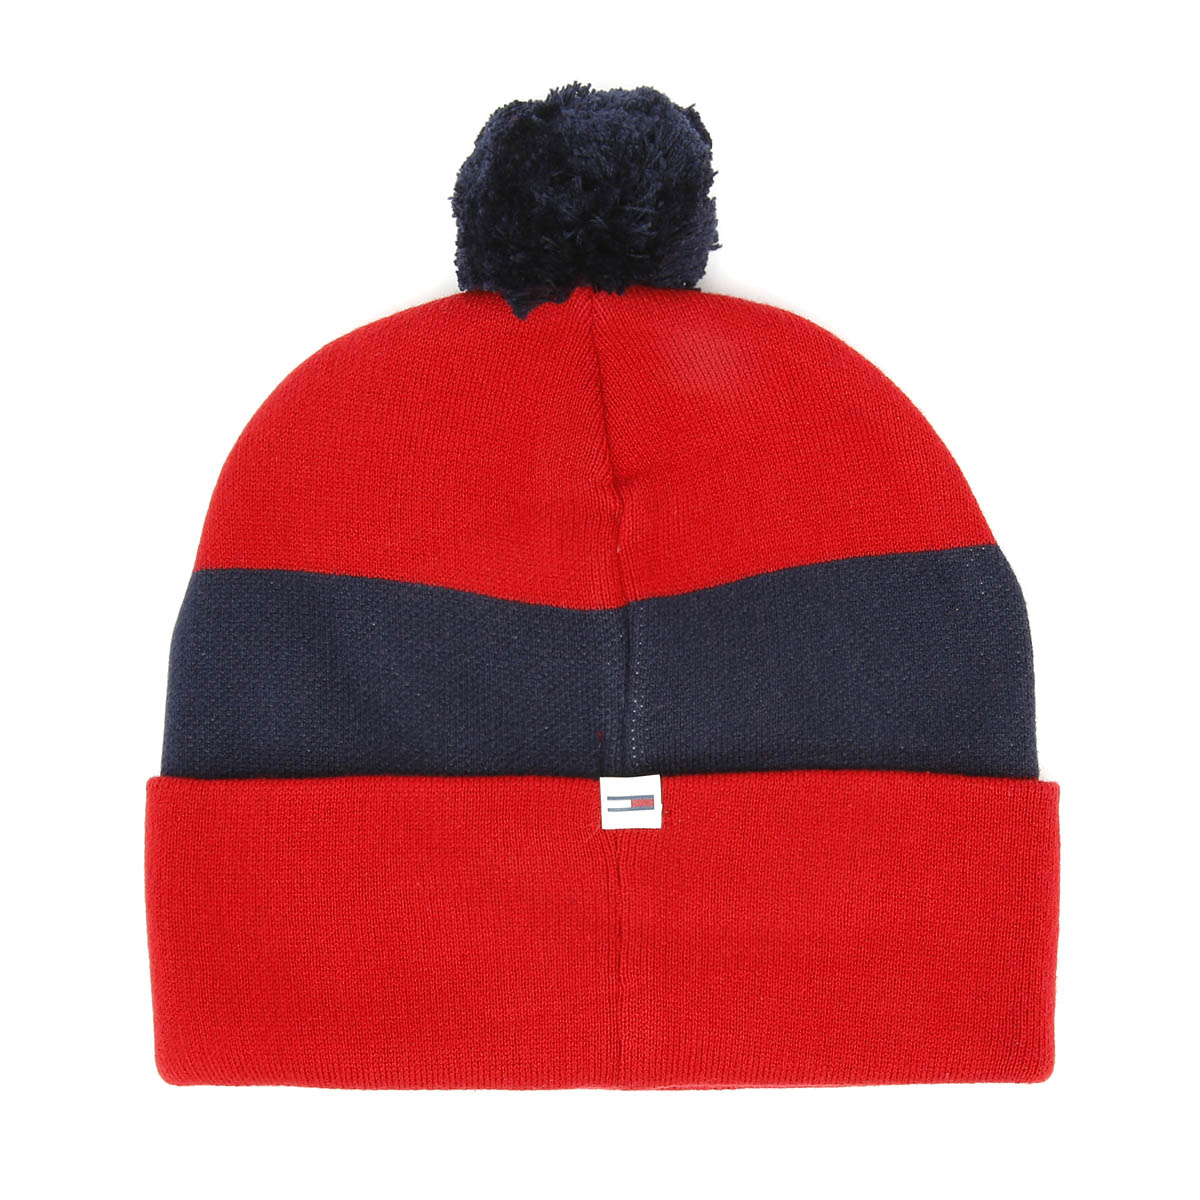 Tommy Hilfiger Rugby Stripe Corporate Red Beanie Unisex Warm Winter Knitted  Hat 999b8ac4201